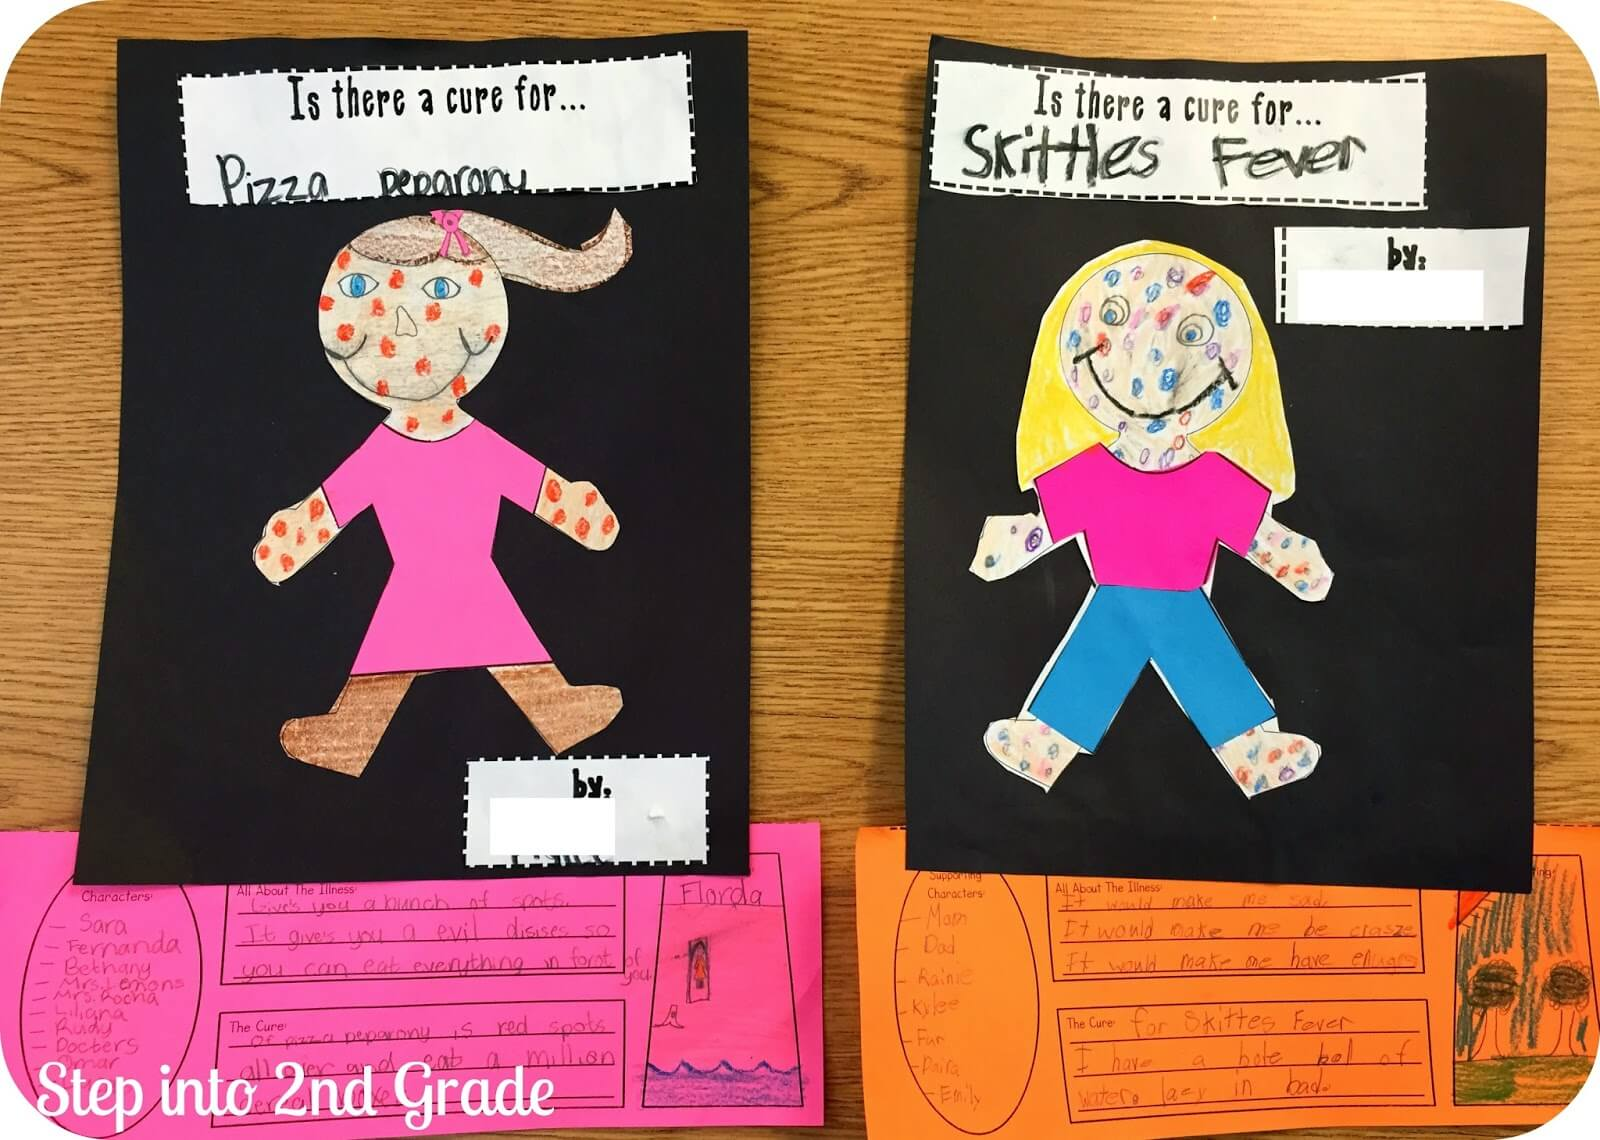 Uncategorized Chocolate Fever Worksheets chocolate fever fun step into 2nd grade after coming up with their very own they made cover and then a little snapshot of pretend book